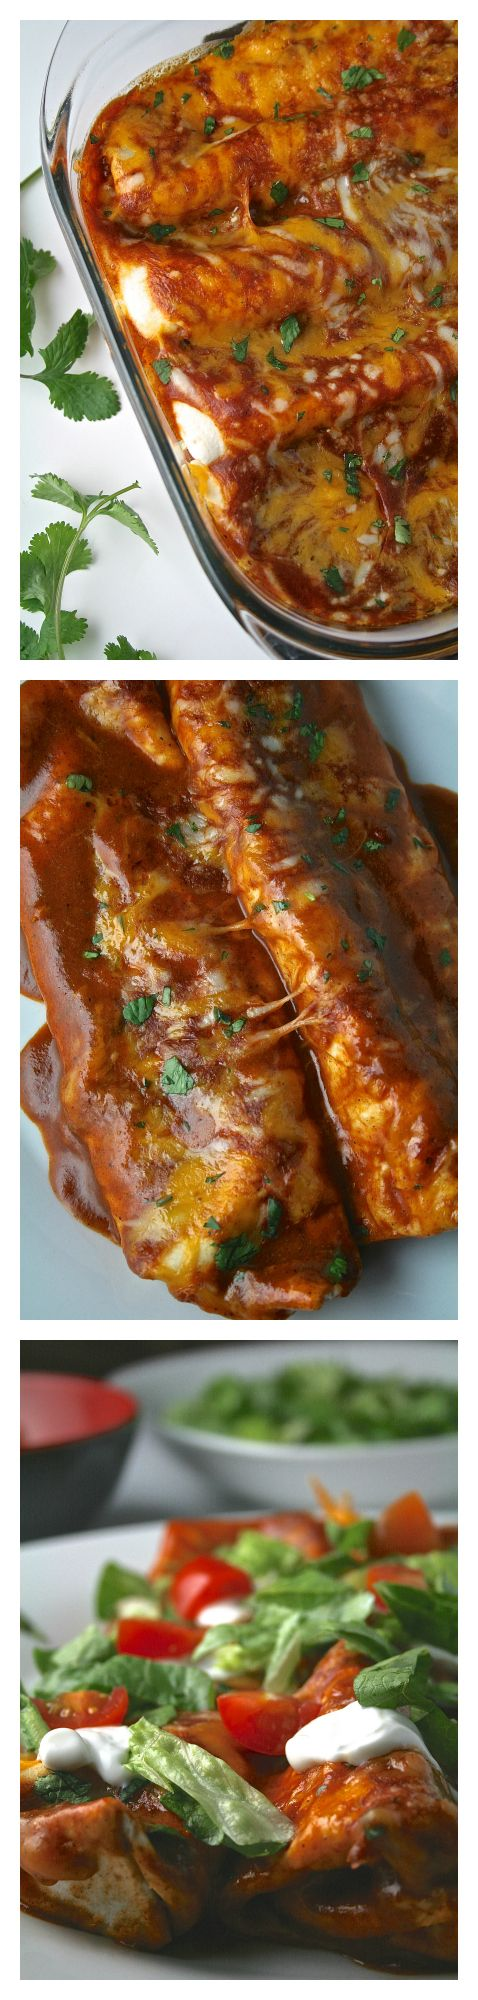 Cheese Enchiladas with Chili Gravy | Chili, The o'jays and ...